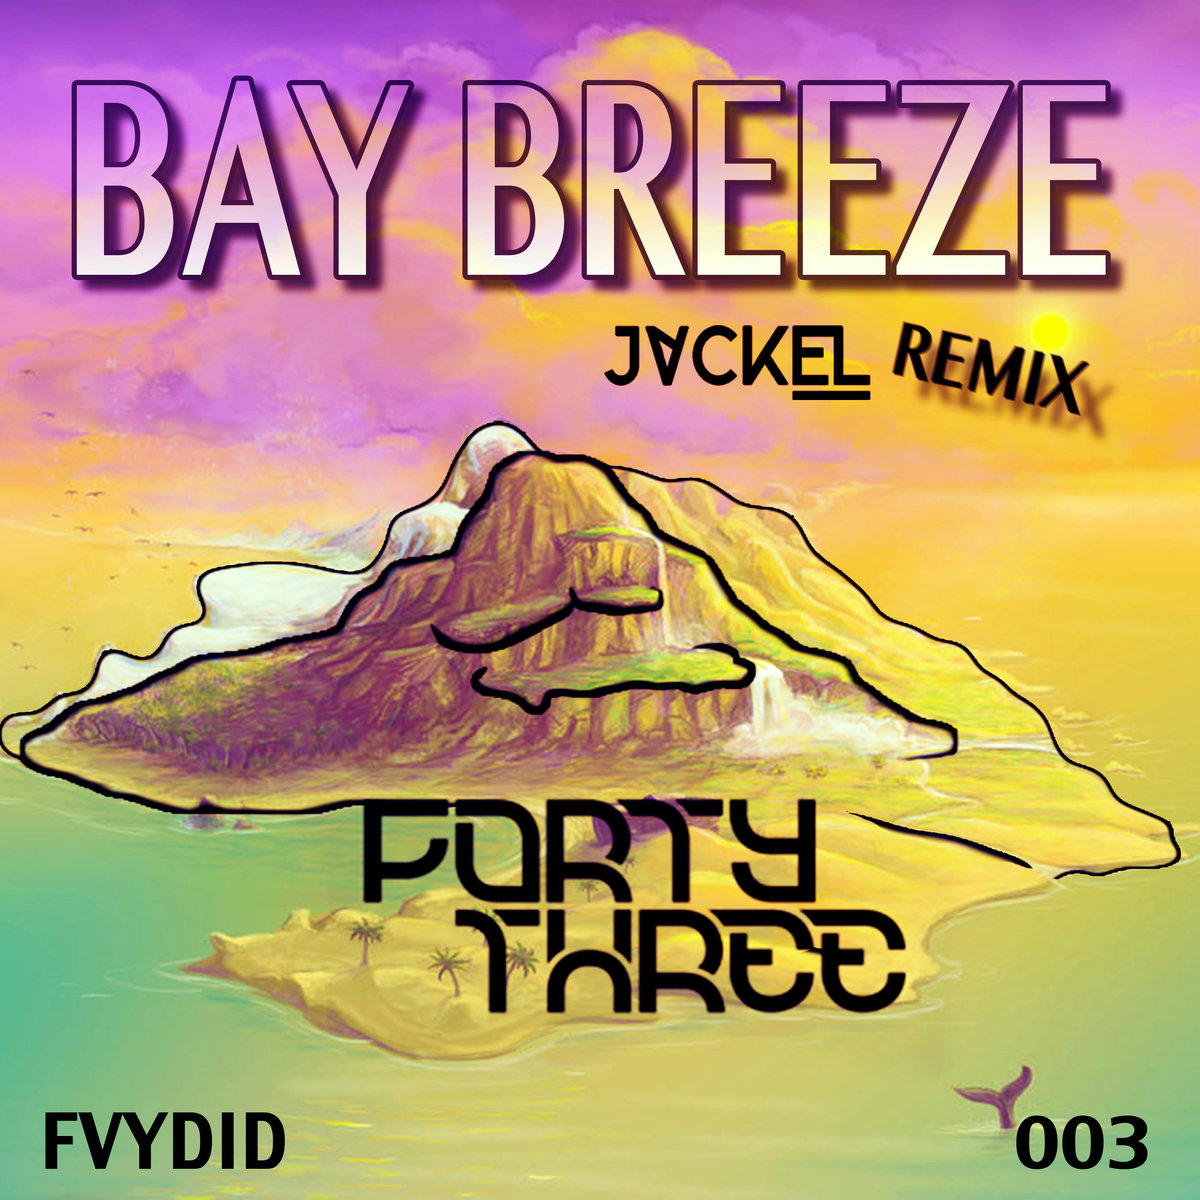 FortyThr33 - Bay Breeze (JackEL Remix) (dance, drum & bass)